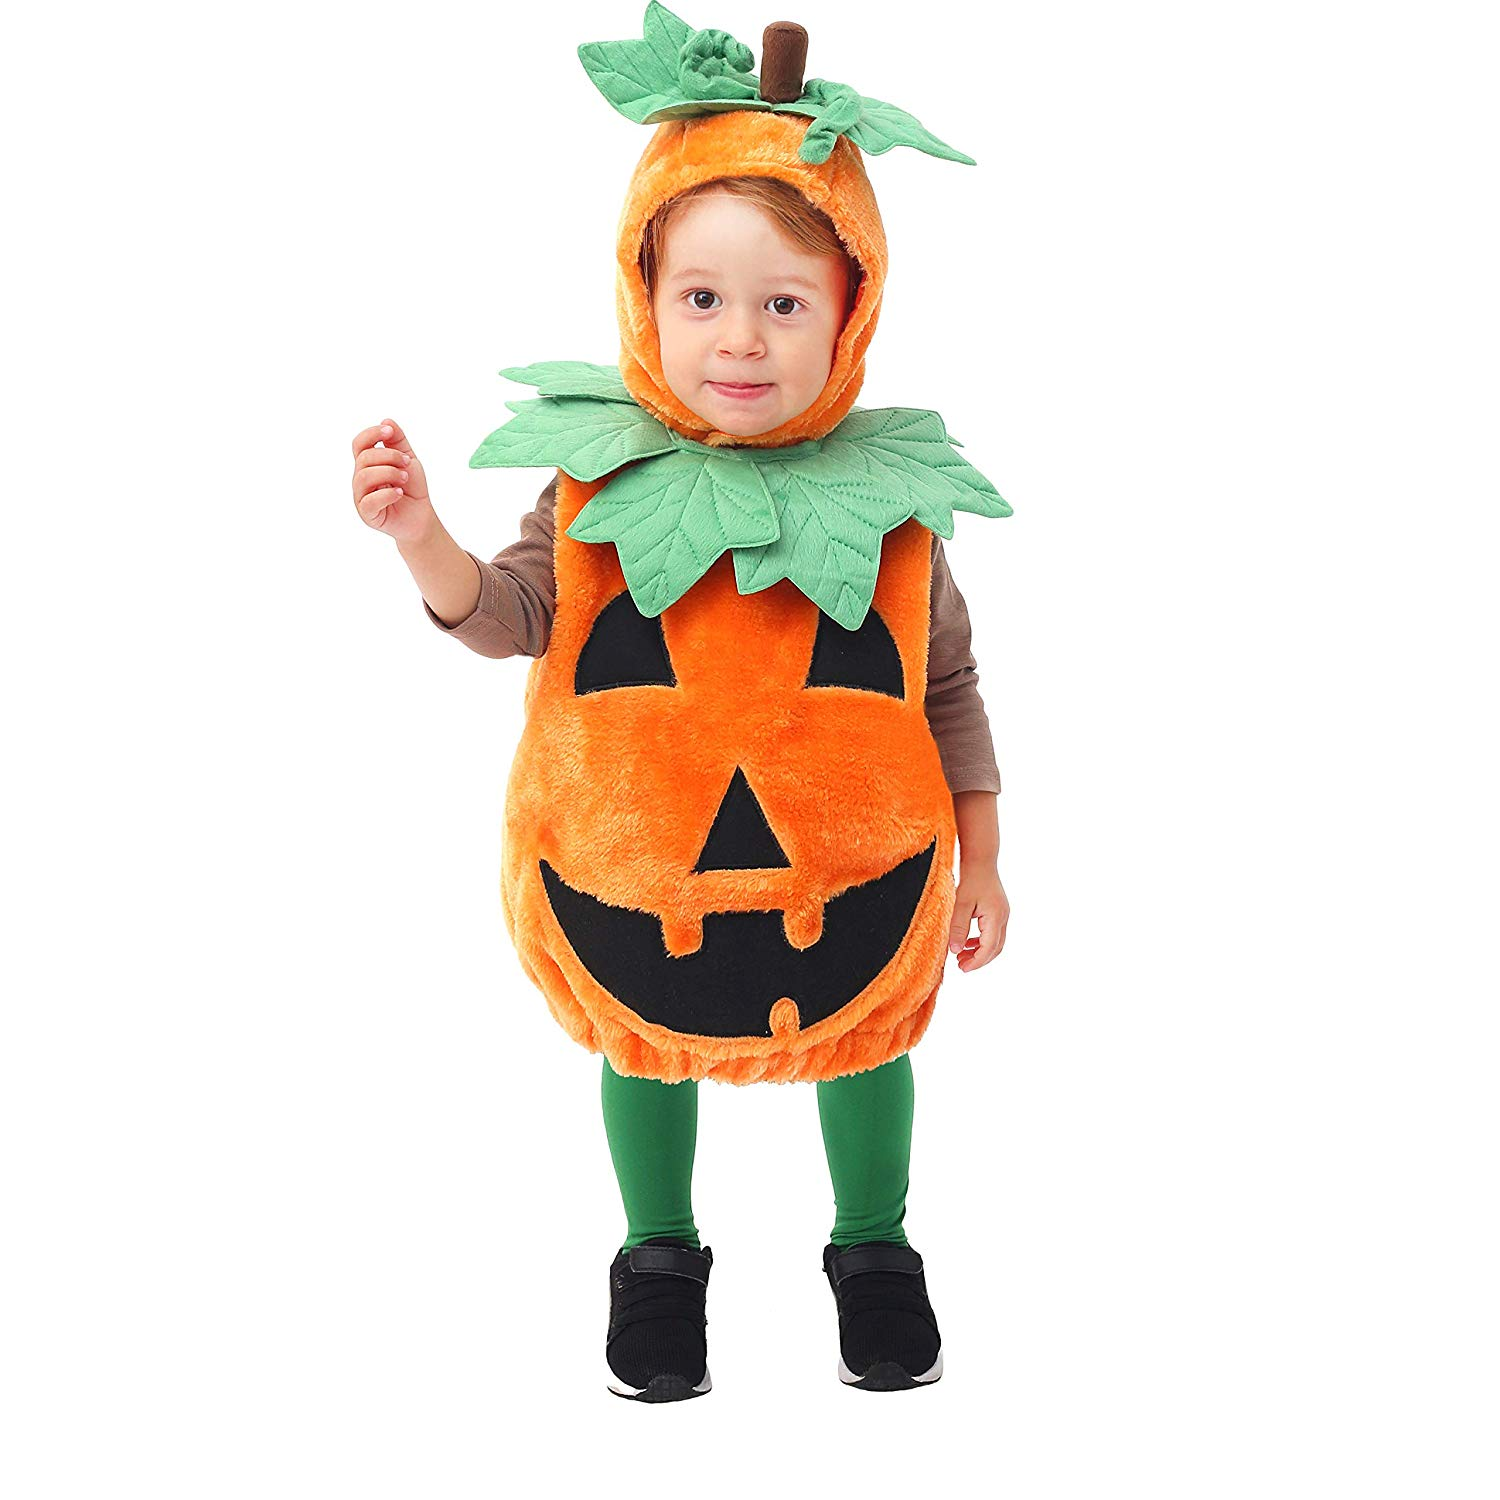 Spooktacular Creations Baby Pumpkin Costume Deluxe Set for Toddler/Infant Halloween Party Dress Up, Role Play and Cosplay